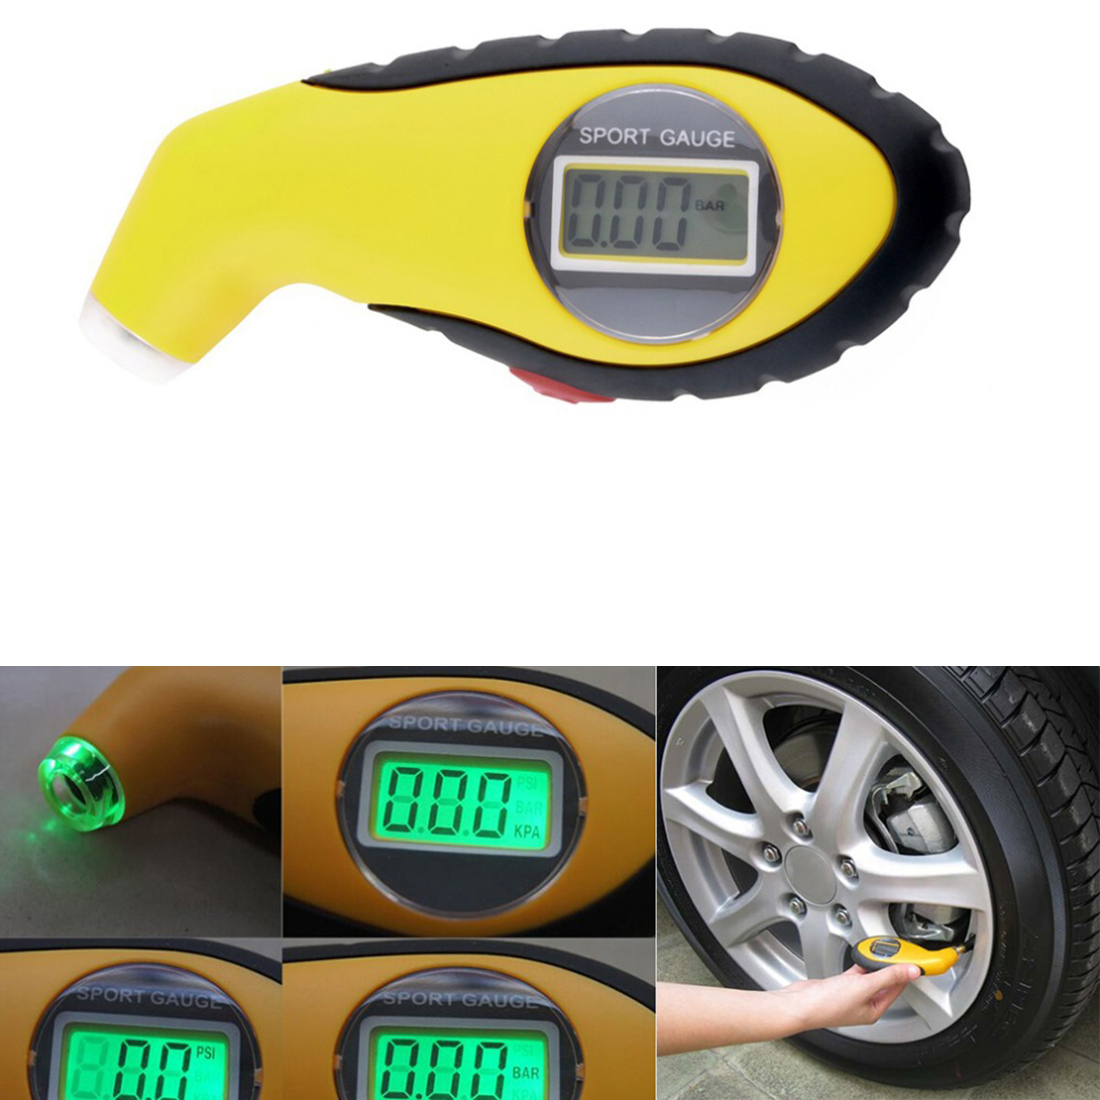 1pcs New PSI Digital Tire Tyre Air Pressure Gauge Tester Tool For Auto Car Motorcycle PSI KPA BAR 1pc portable tire air pressure test gauge pen vehicle car motorcycle tyre test meter pen silvery 5 50 psi diagnostic tool